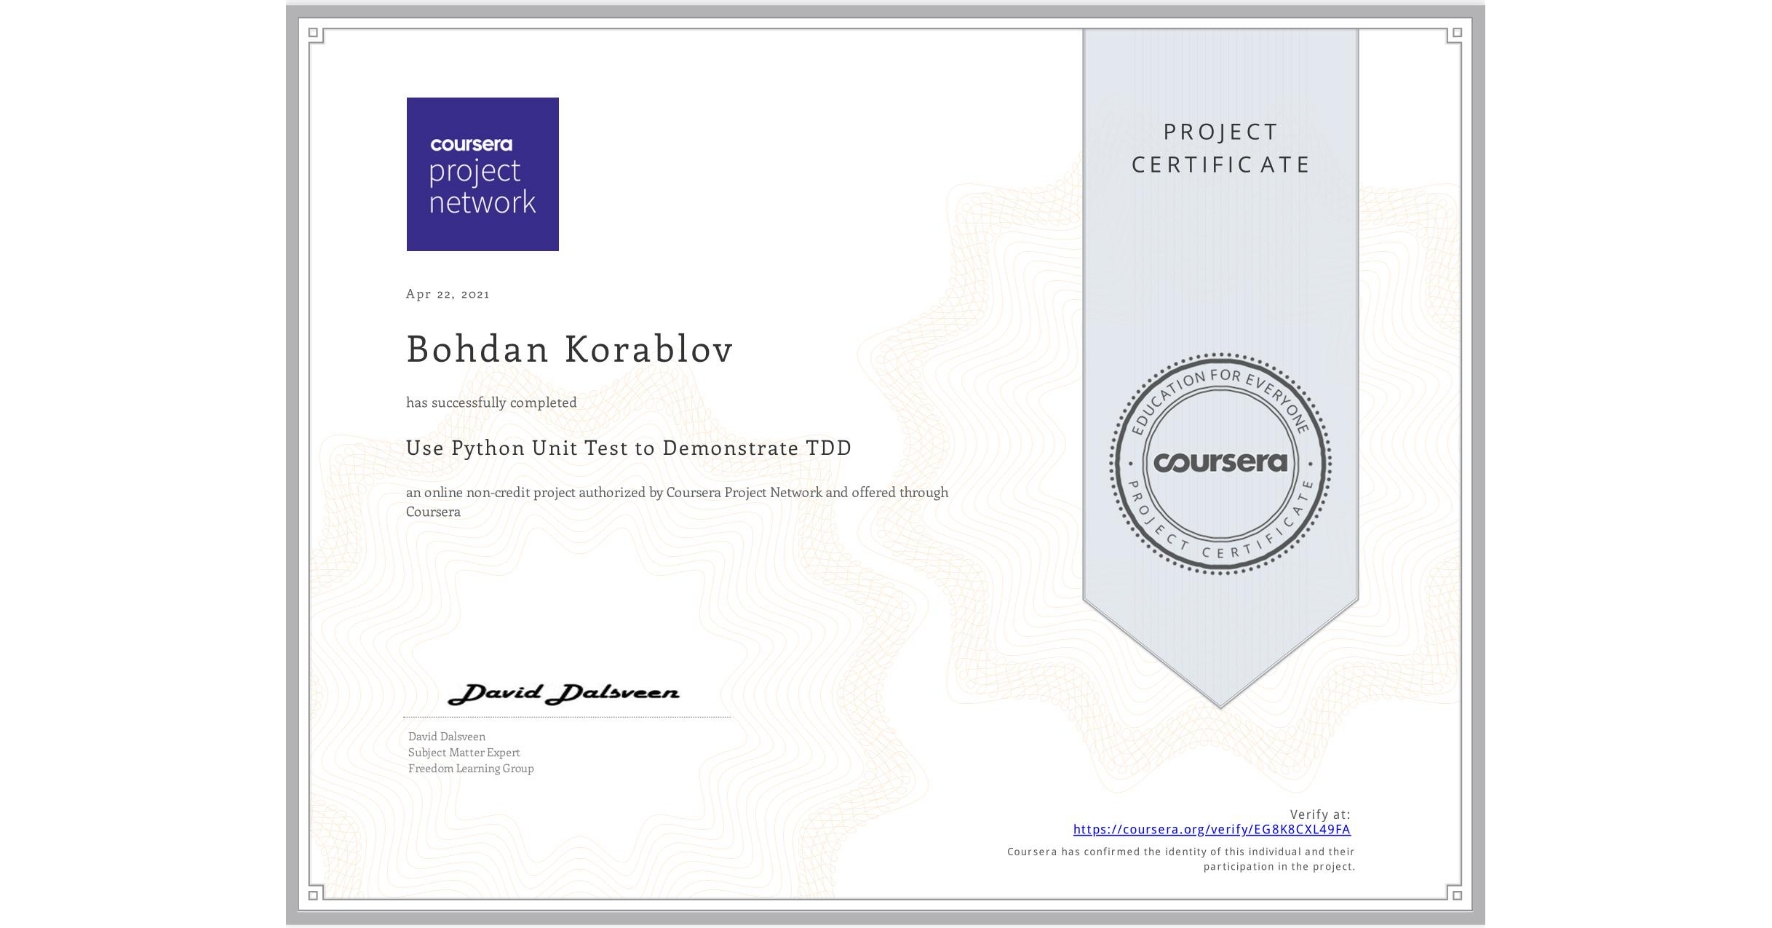 View certificate for Bohdan Korablov, Use Python Unit Test to Demonstrate TDD, an online non-credit course authorized by Coursera Project Network and offered through Coursera